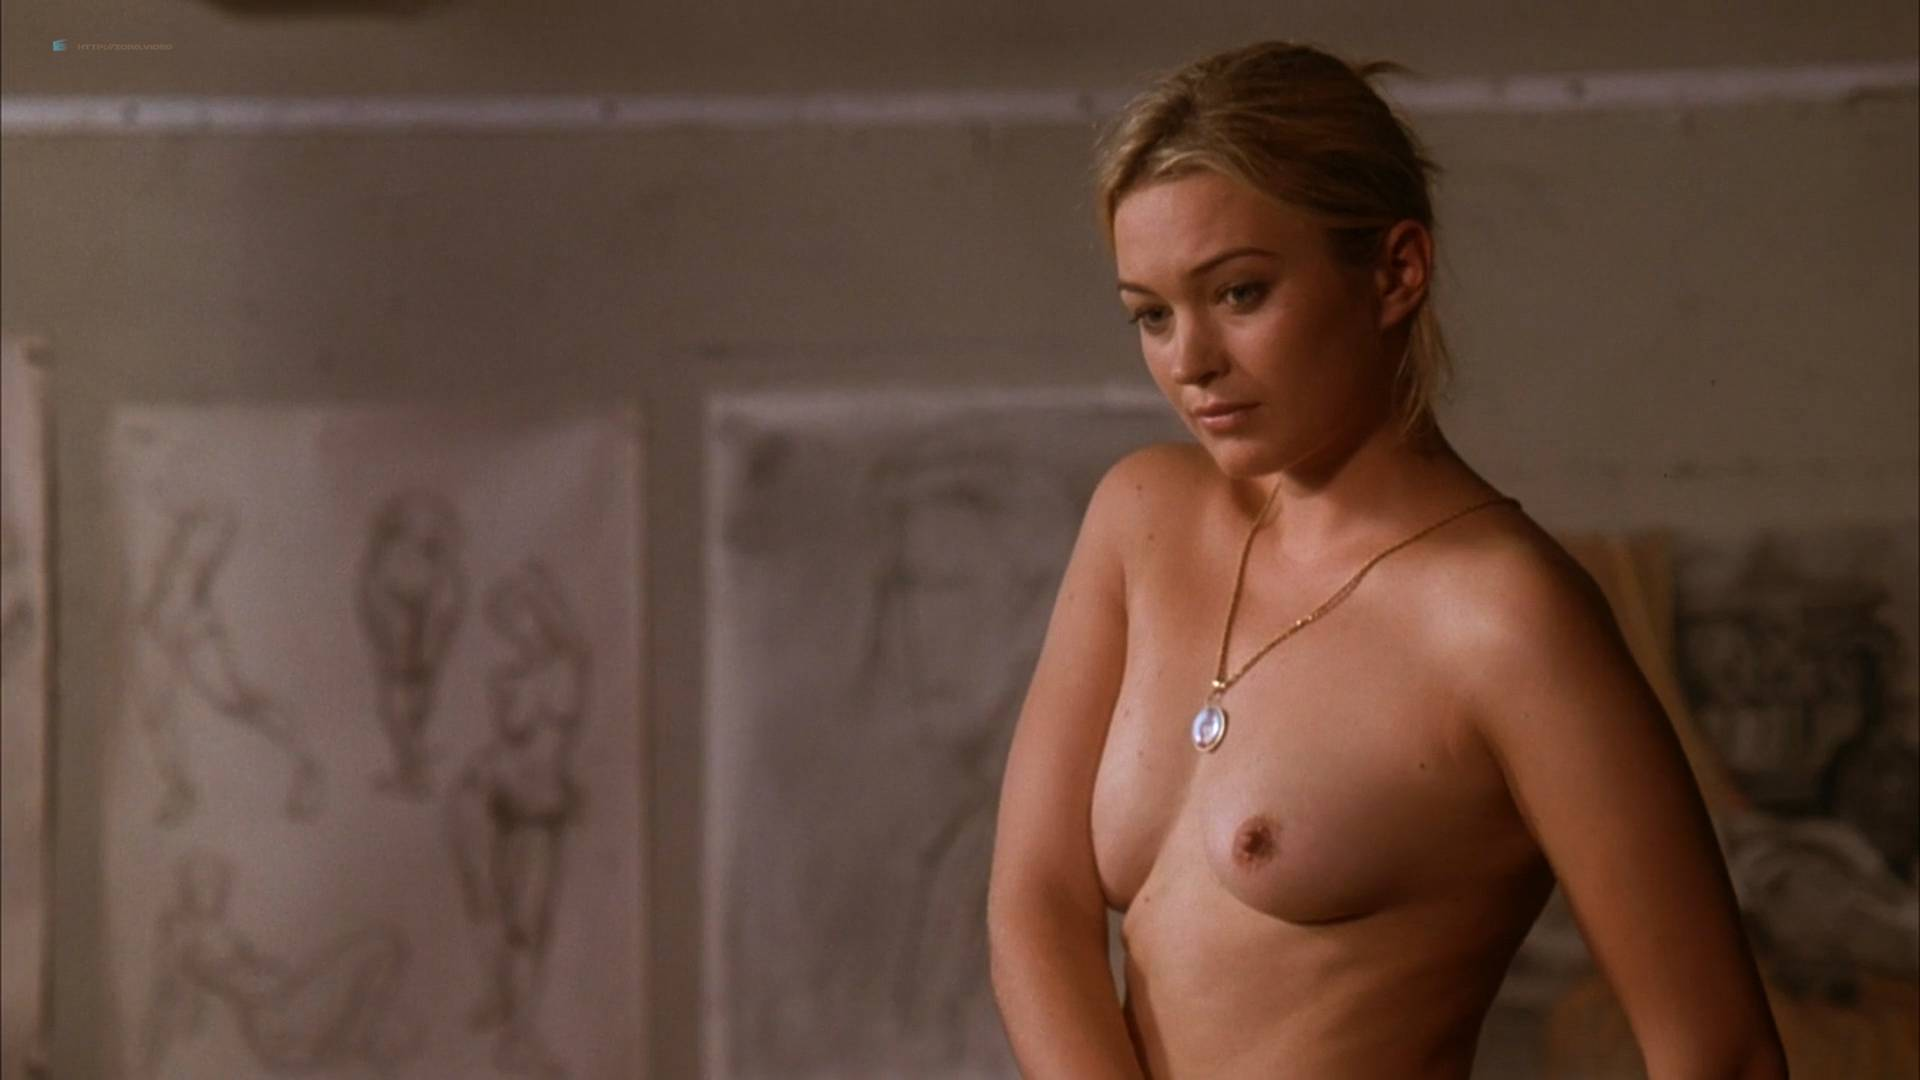 Sophia Myles nude butt and topless - Art School Confidential (2006) HD 1080p Web (9)